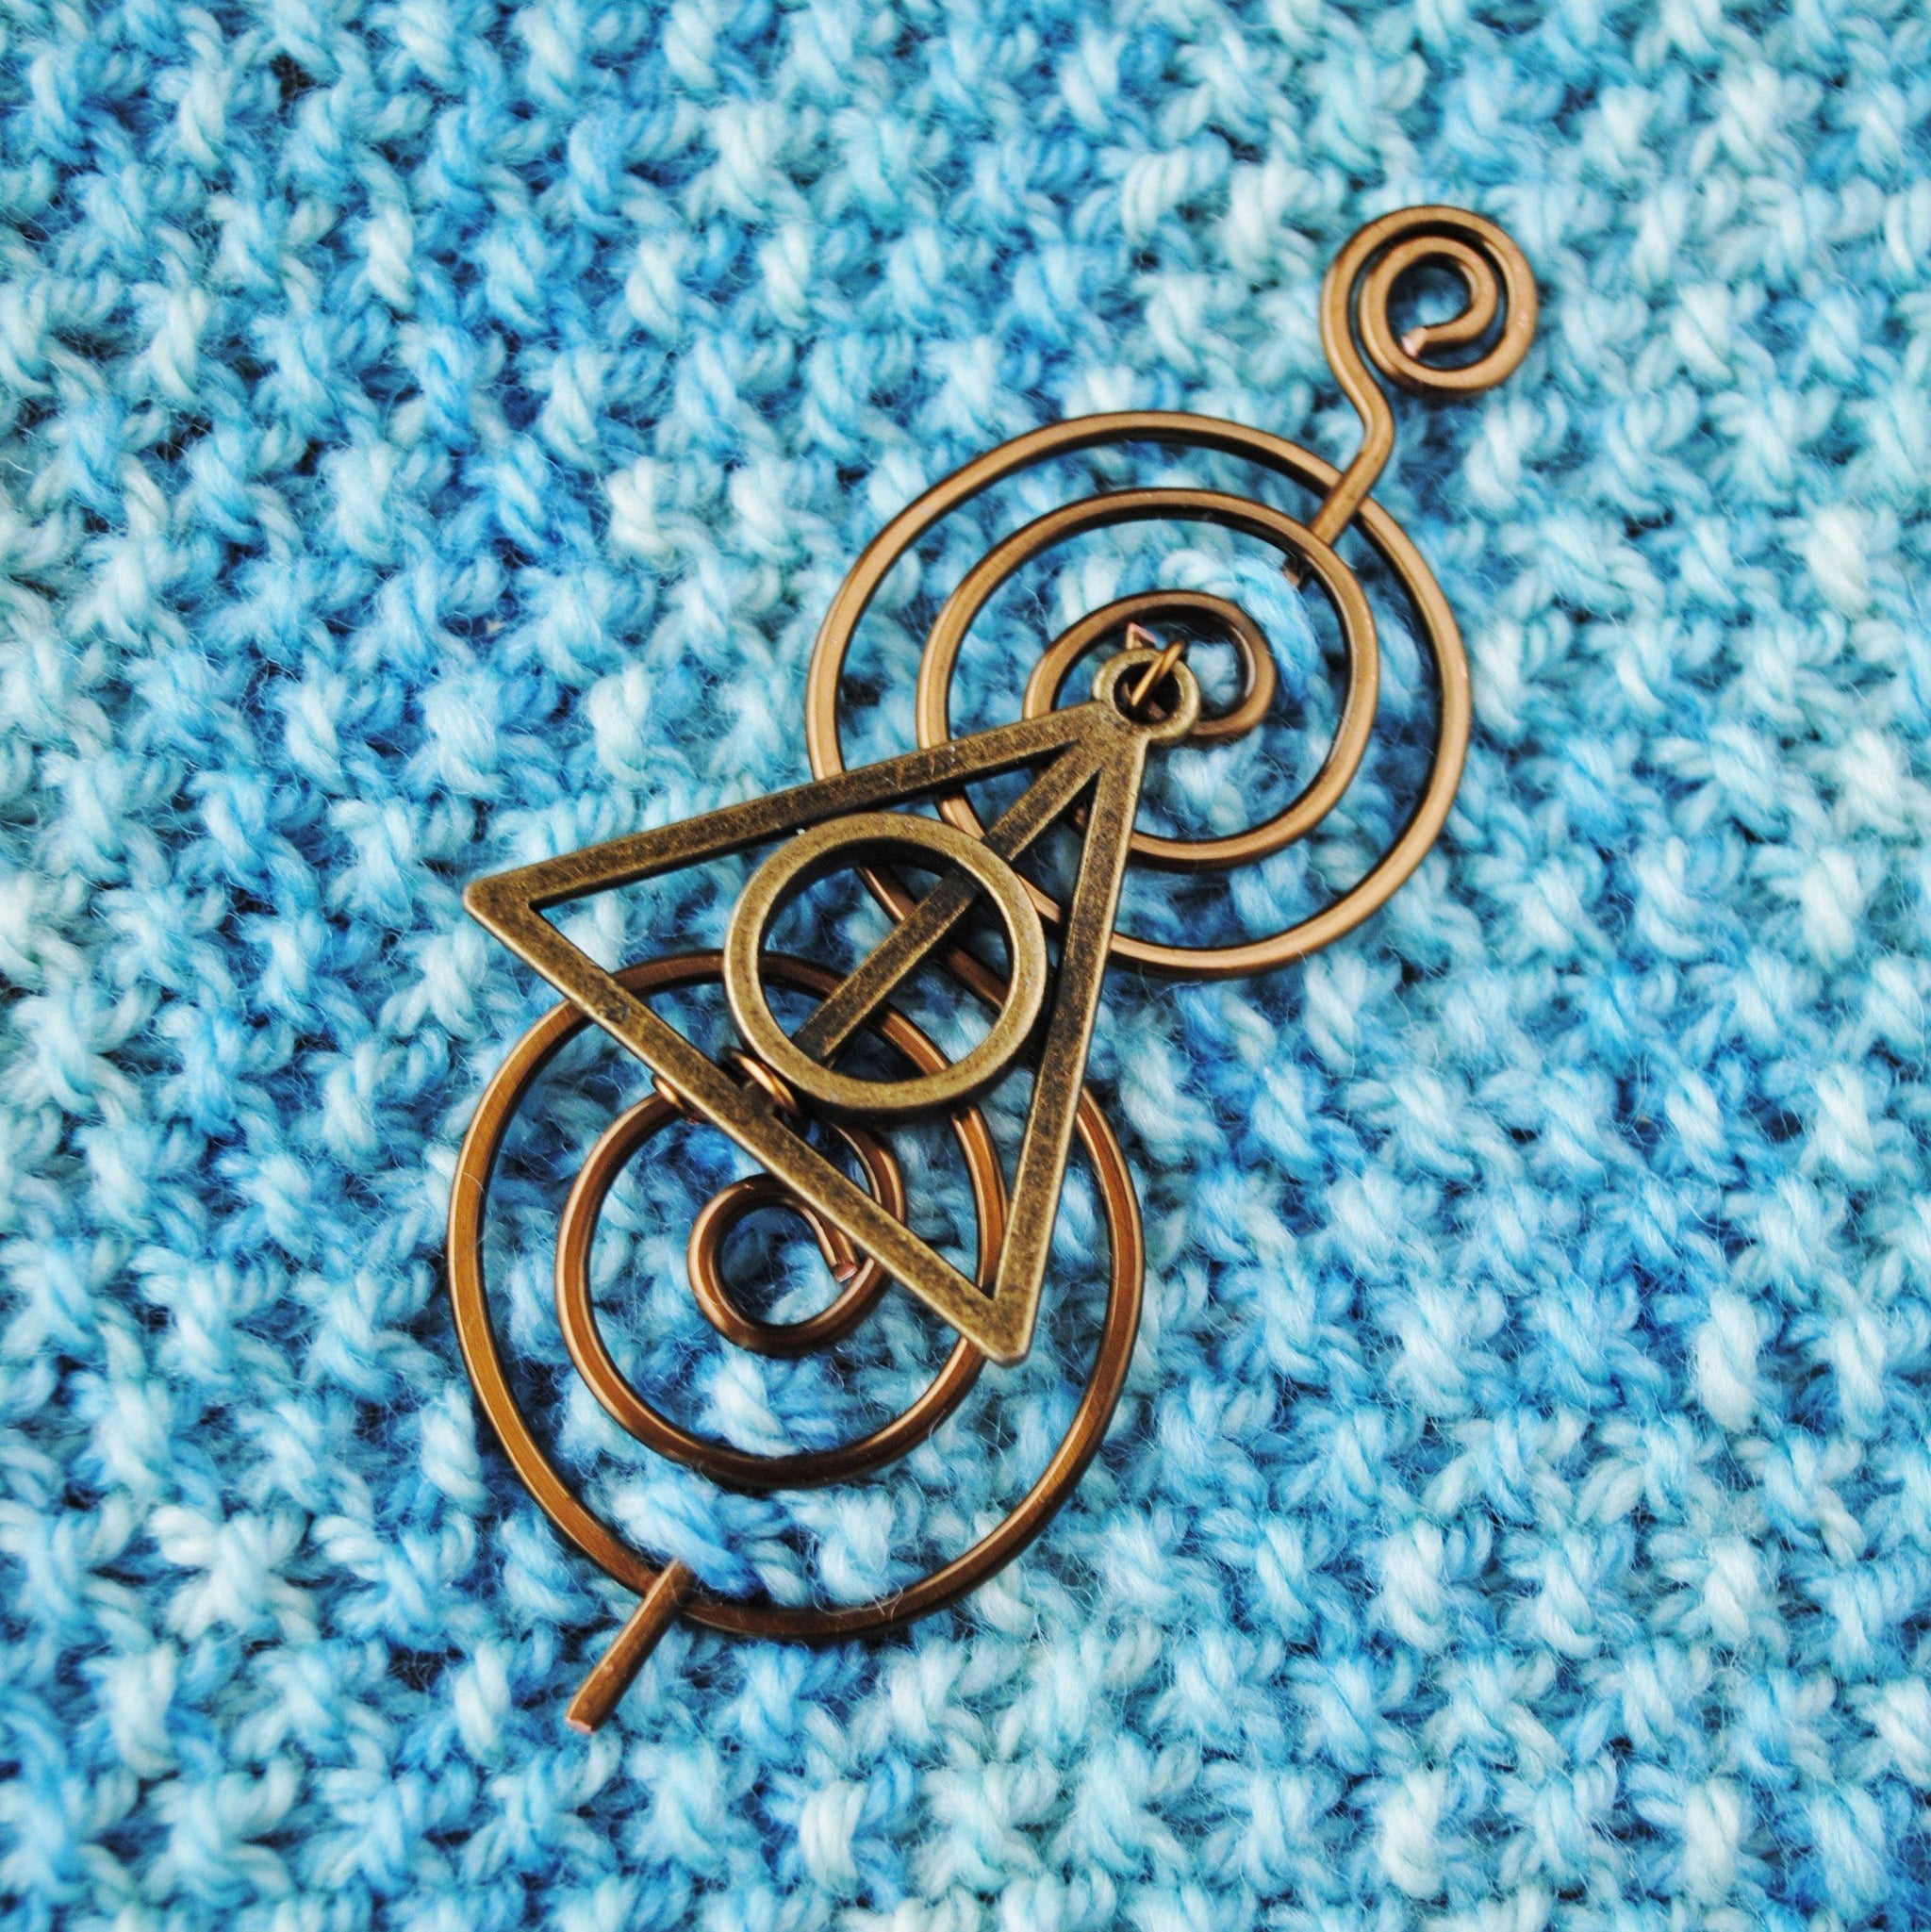 Shawl pin gift ideas for her sweater pin handmade gifts Scarf pin Resin jewelry Star pin copper pin star brooch grey shawl pin